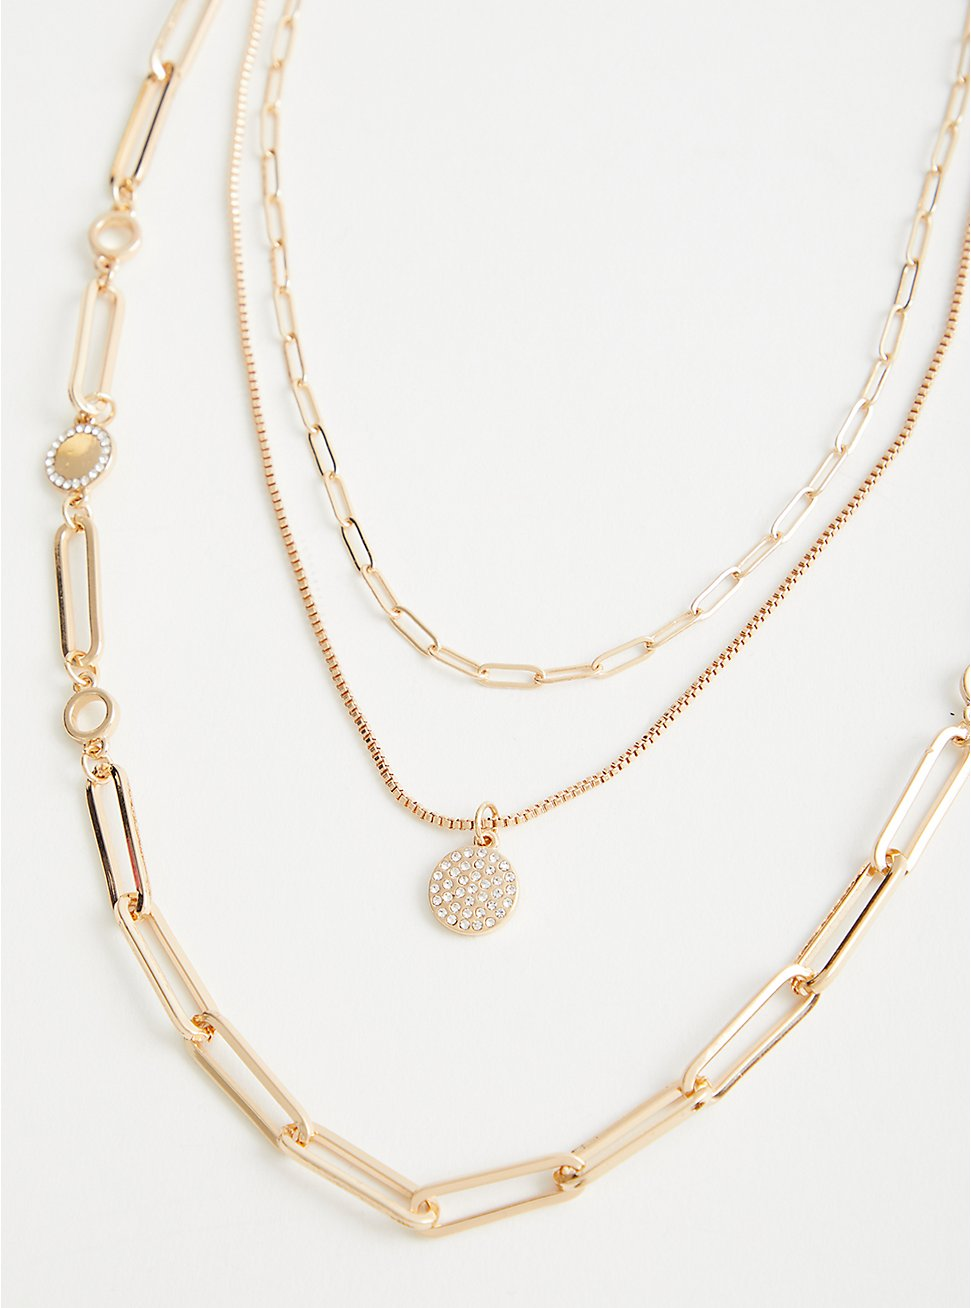 Plus Size Link With Pave Disc 3 Row Layered Necklace - Gold Tone, , hi-res